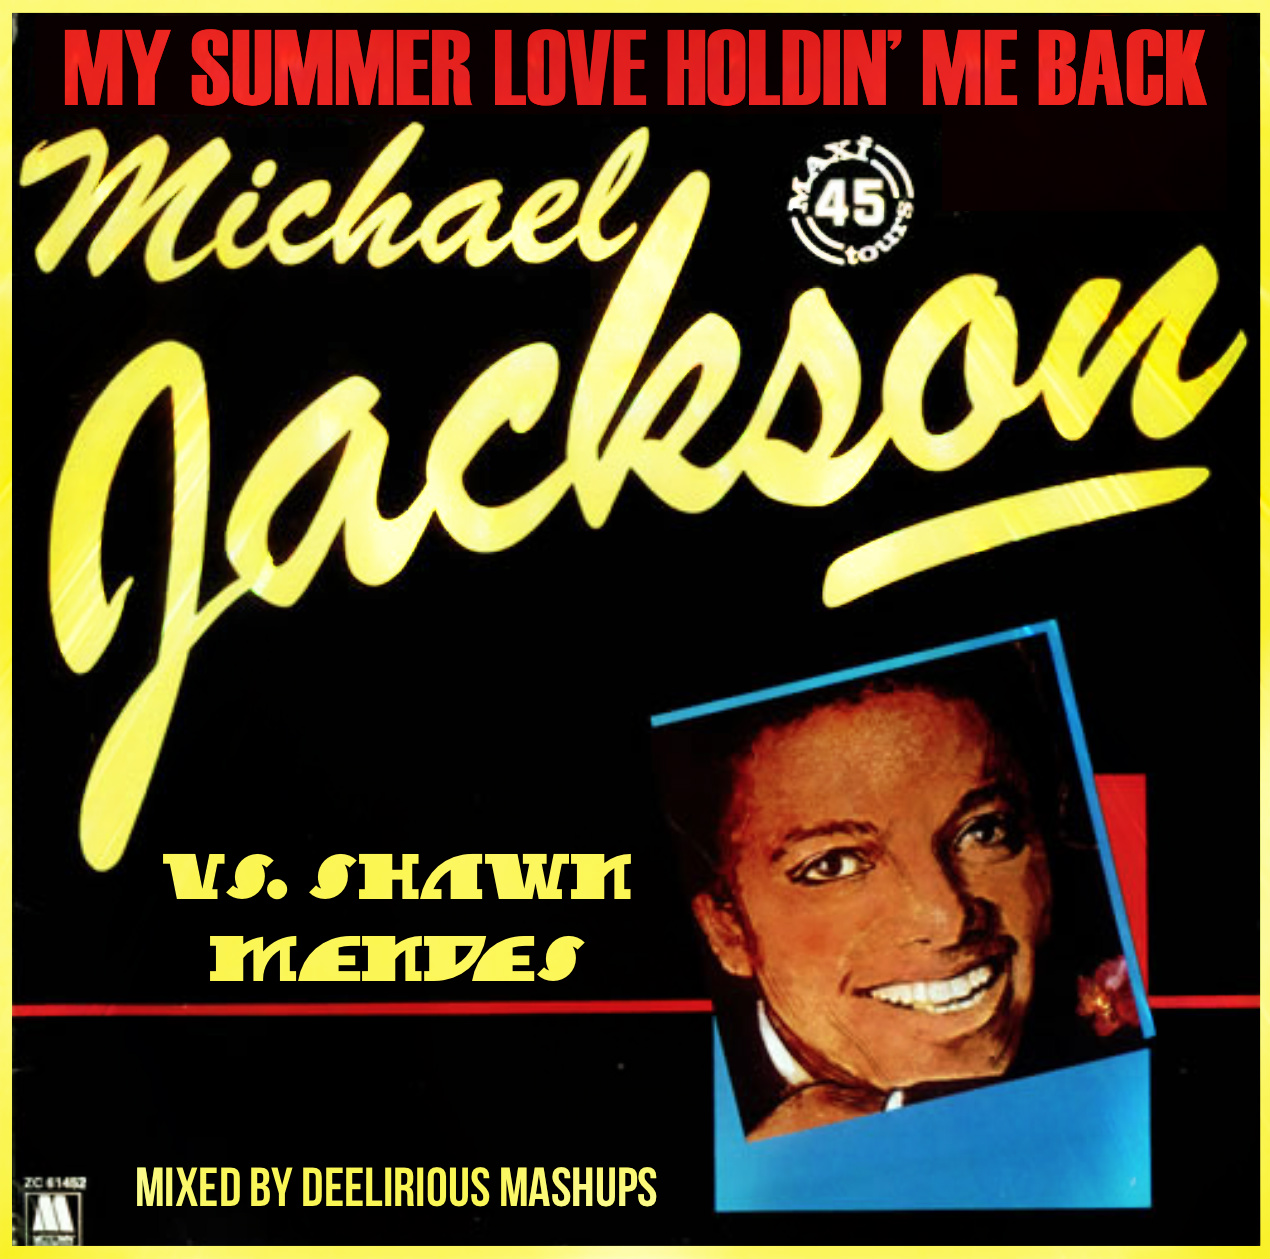 Michael Jackson Vs. Shawn Mendes - My Summer Love Holdin' Me Back